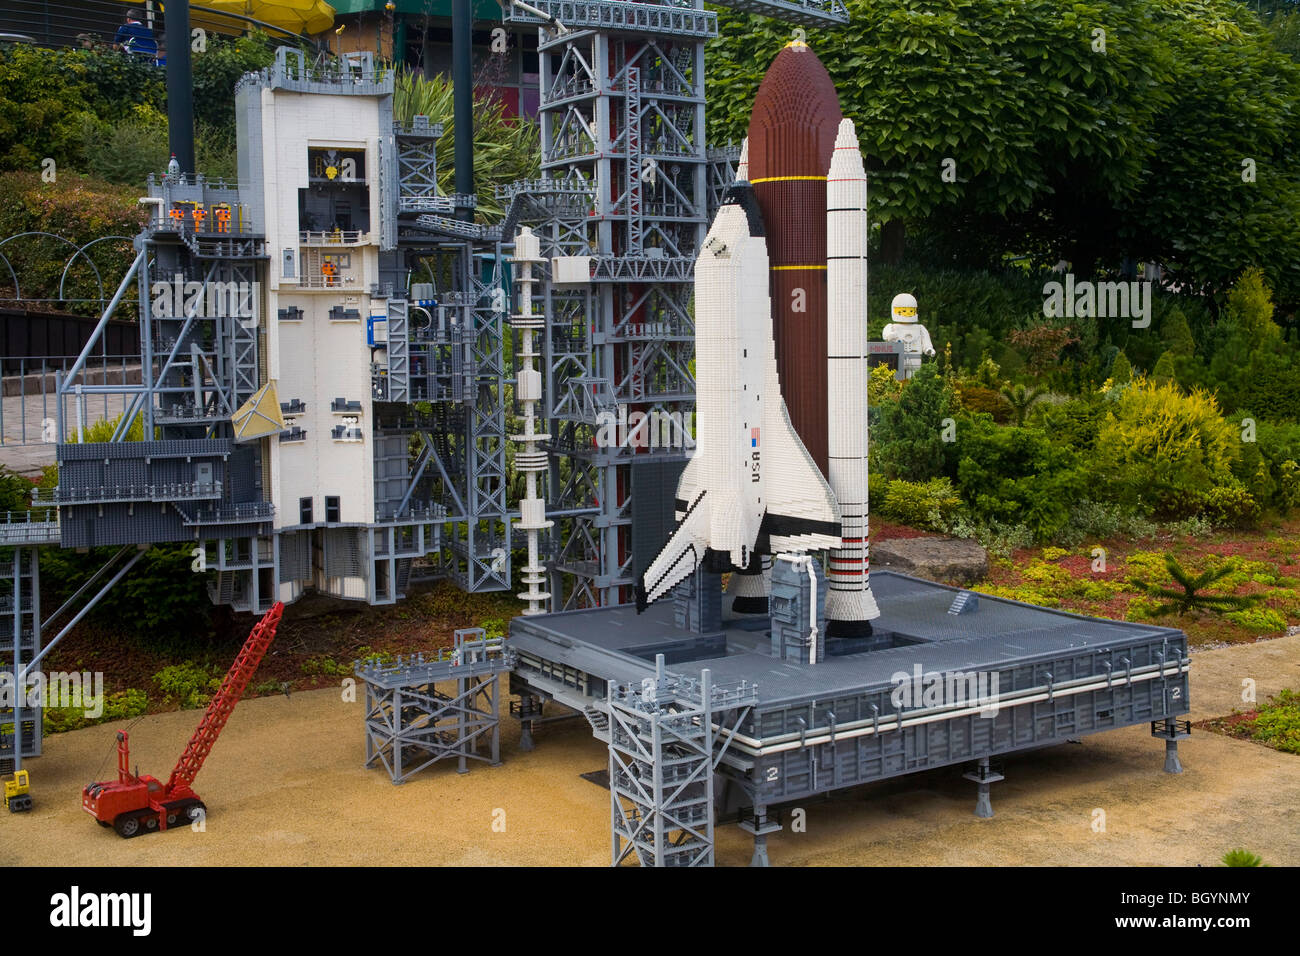 Space Shuttle on launch pad, Legoland Windsor - Stock Image